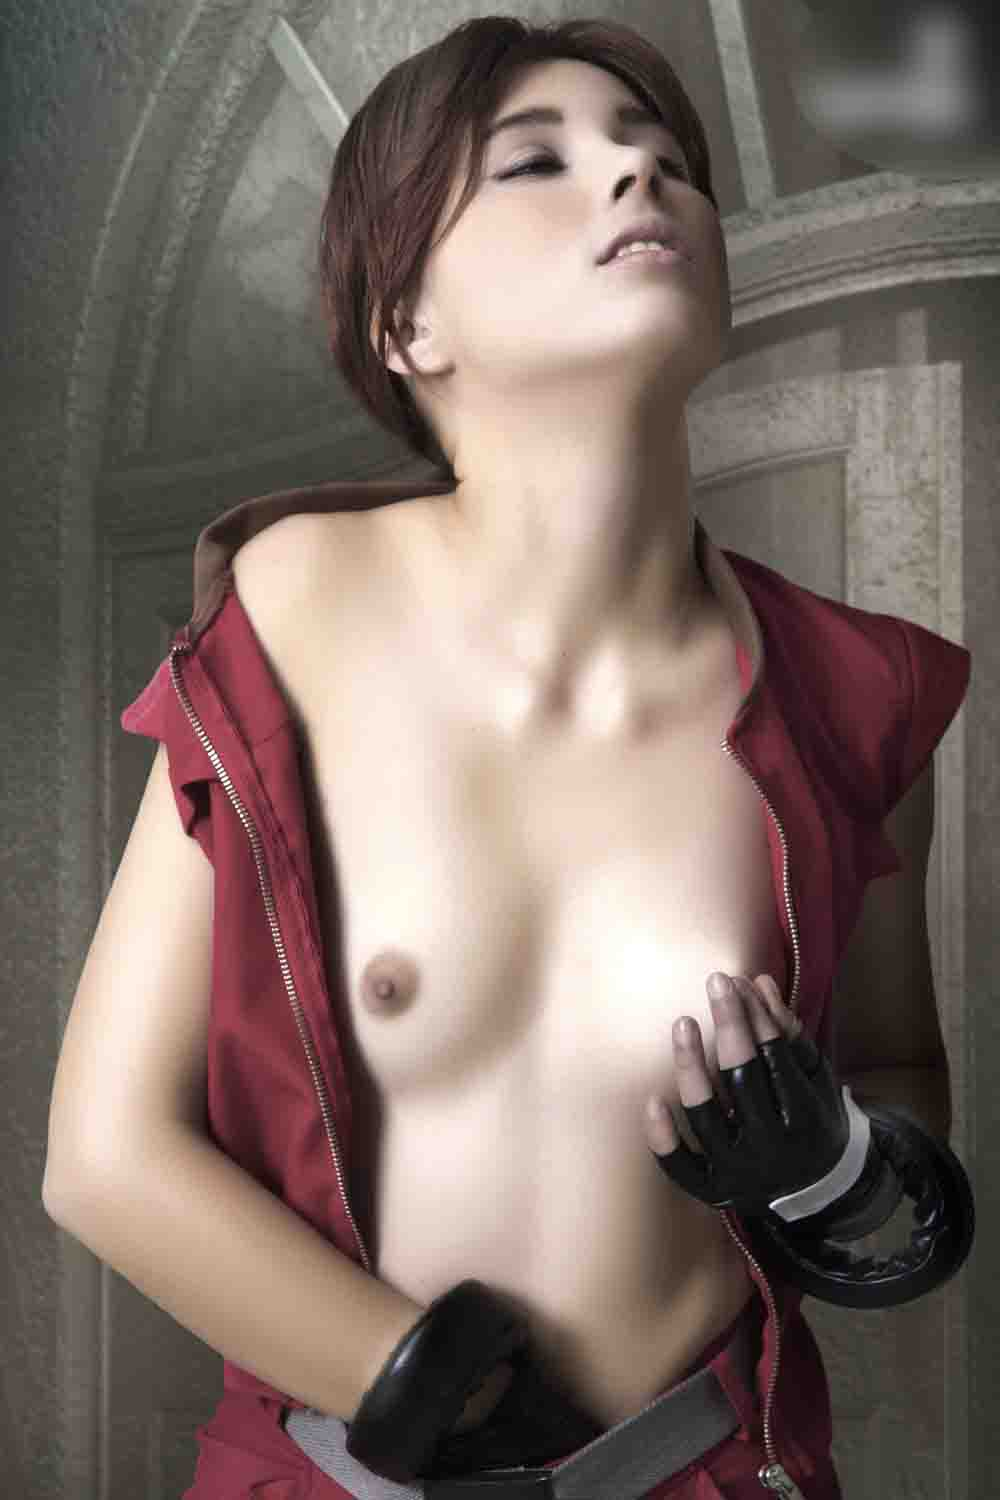 Nude pic of girls from resident evil  naked scene